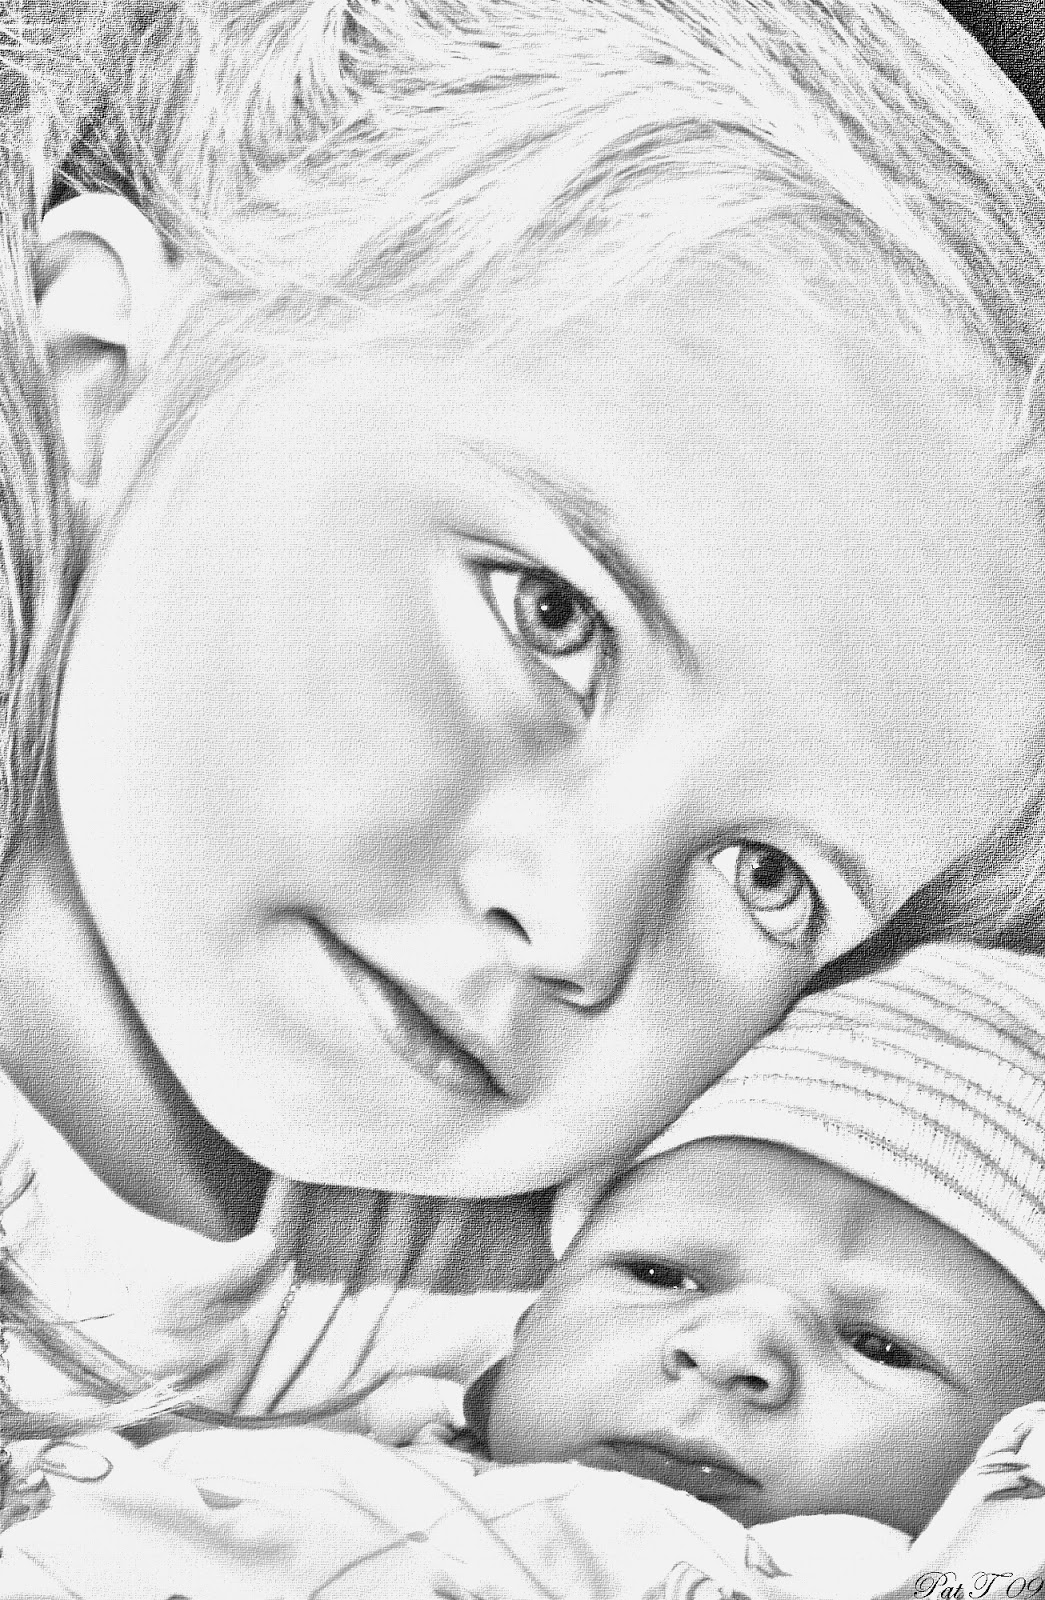 Pencil sketches wallpaper baby pencil sketch images 1045x1600